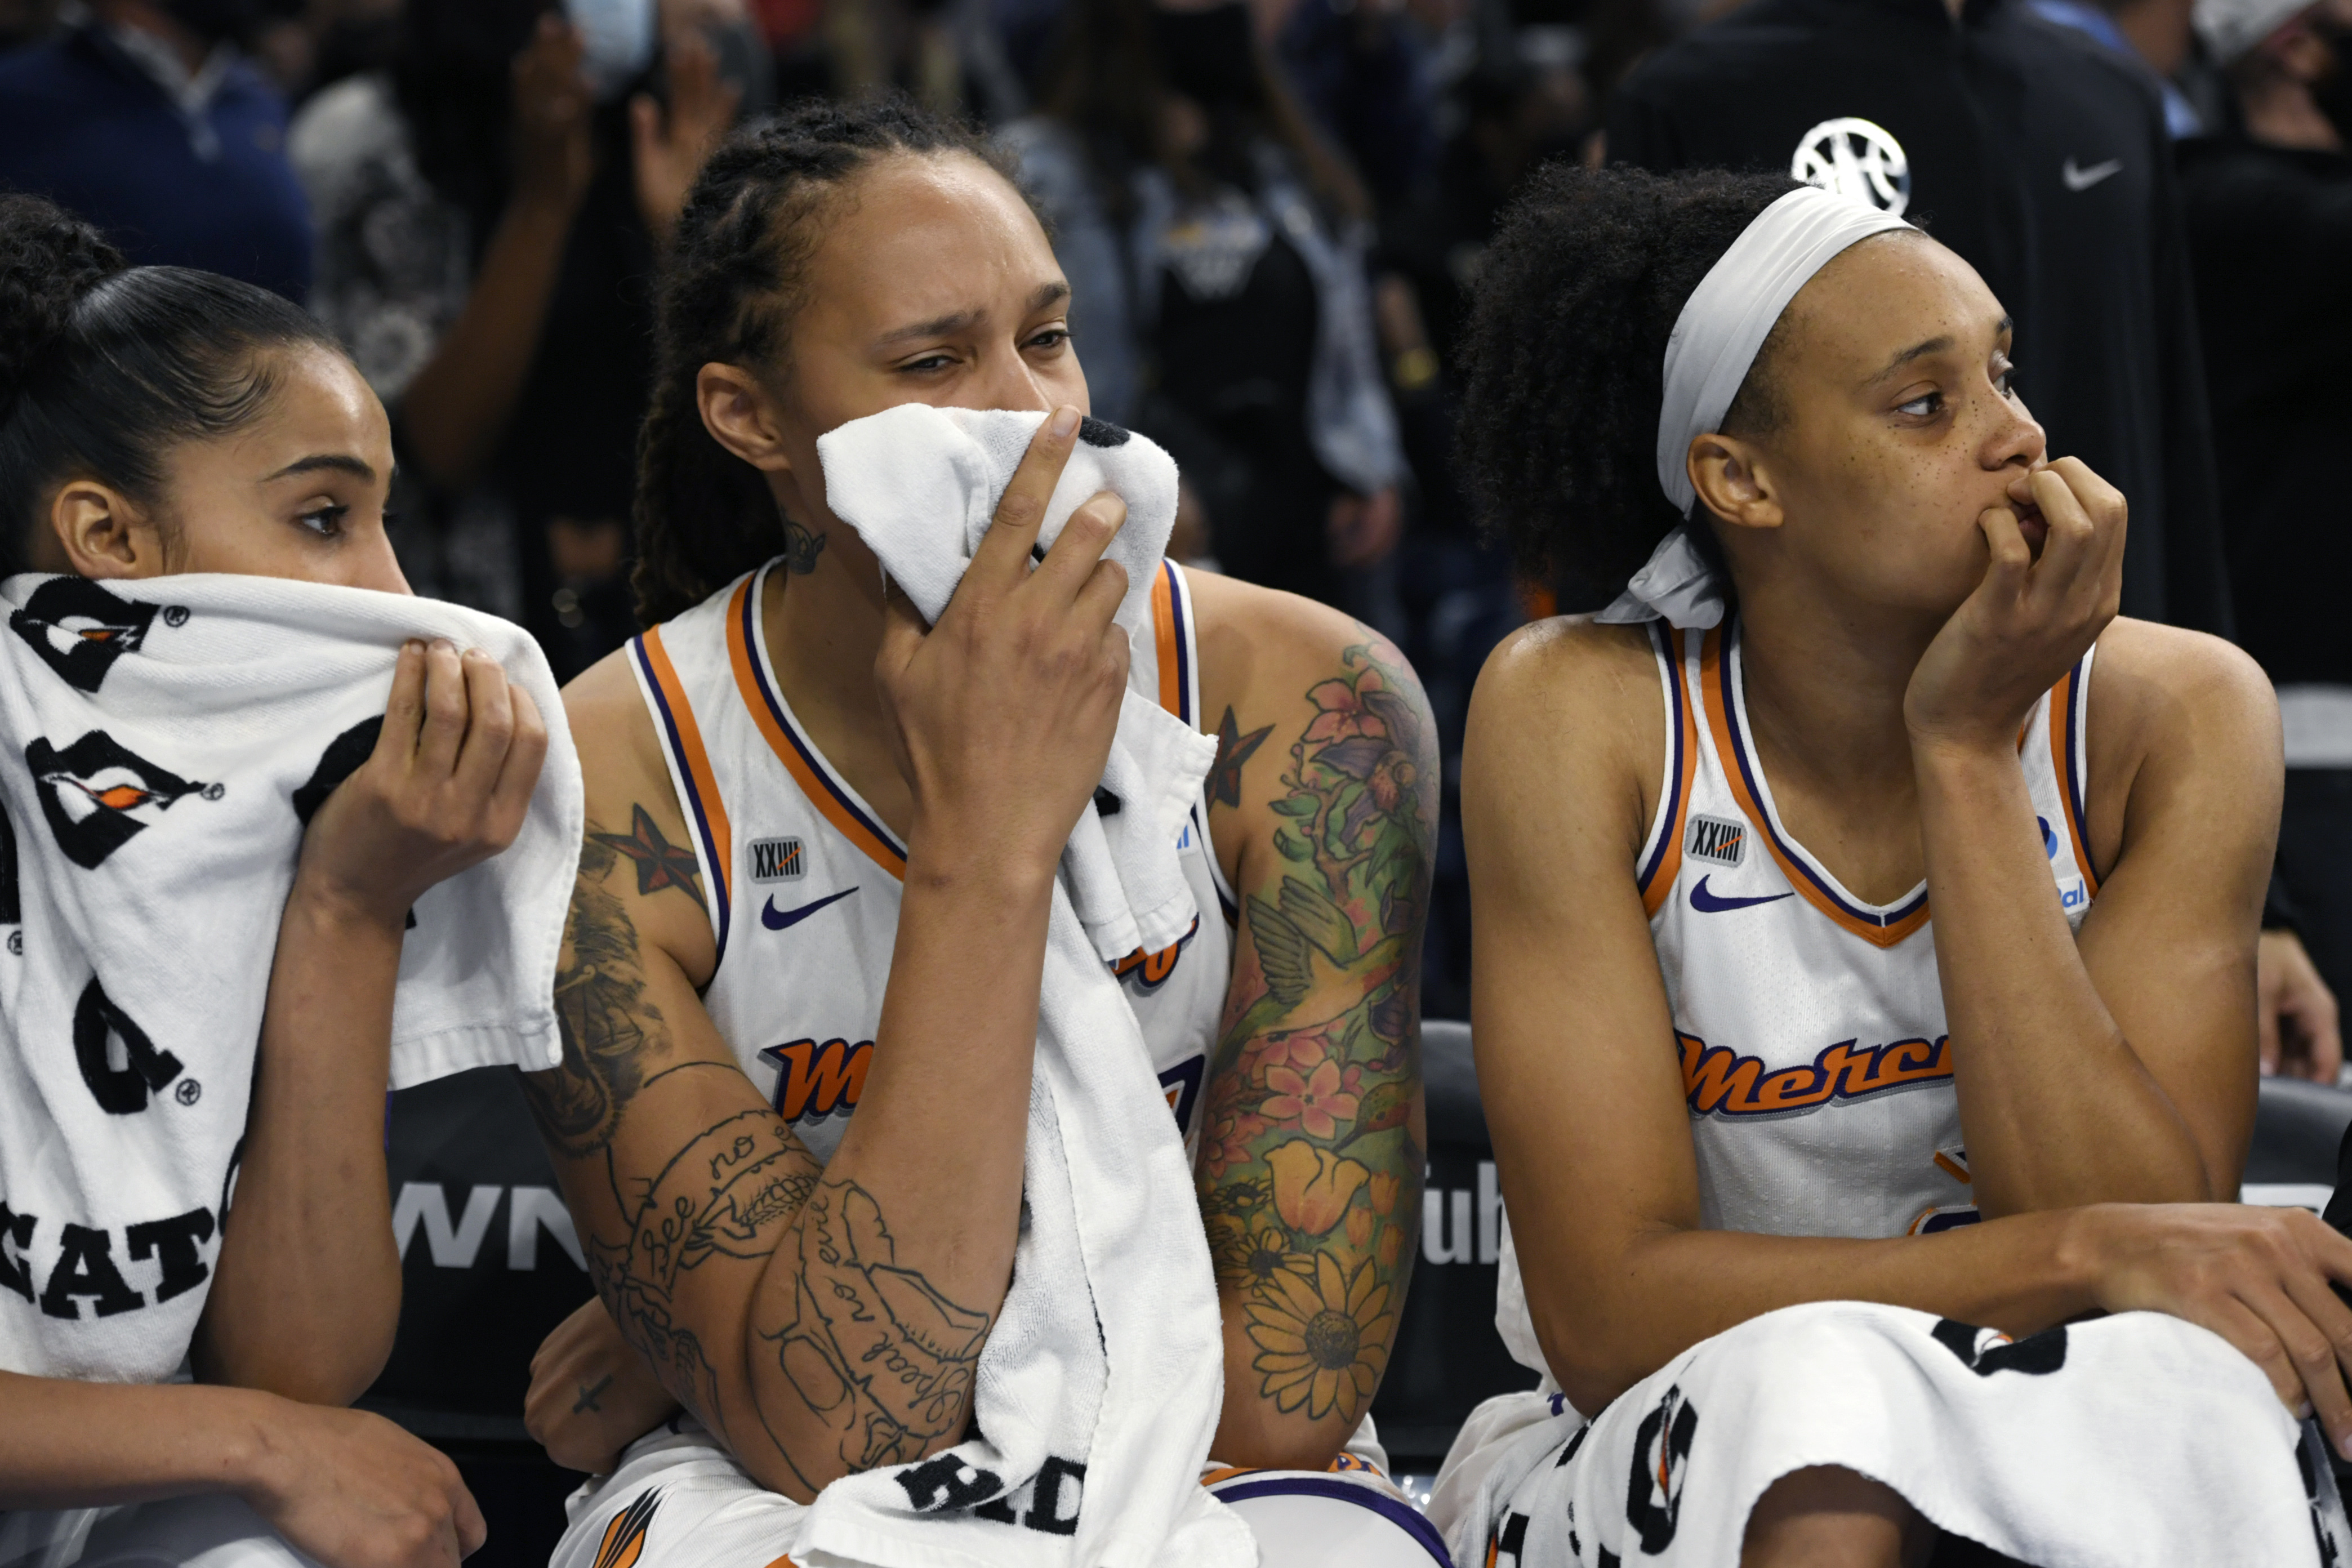 The WNBA fined the Phoenix Mercury $10,000 for violating the league's media access rules after the team lost the Finals to the Sky.